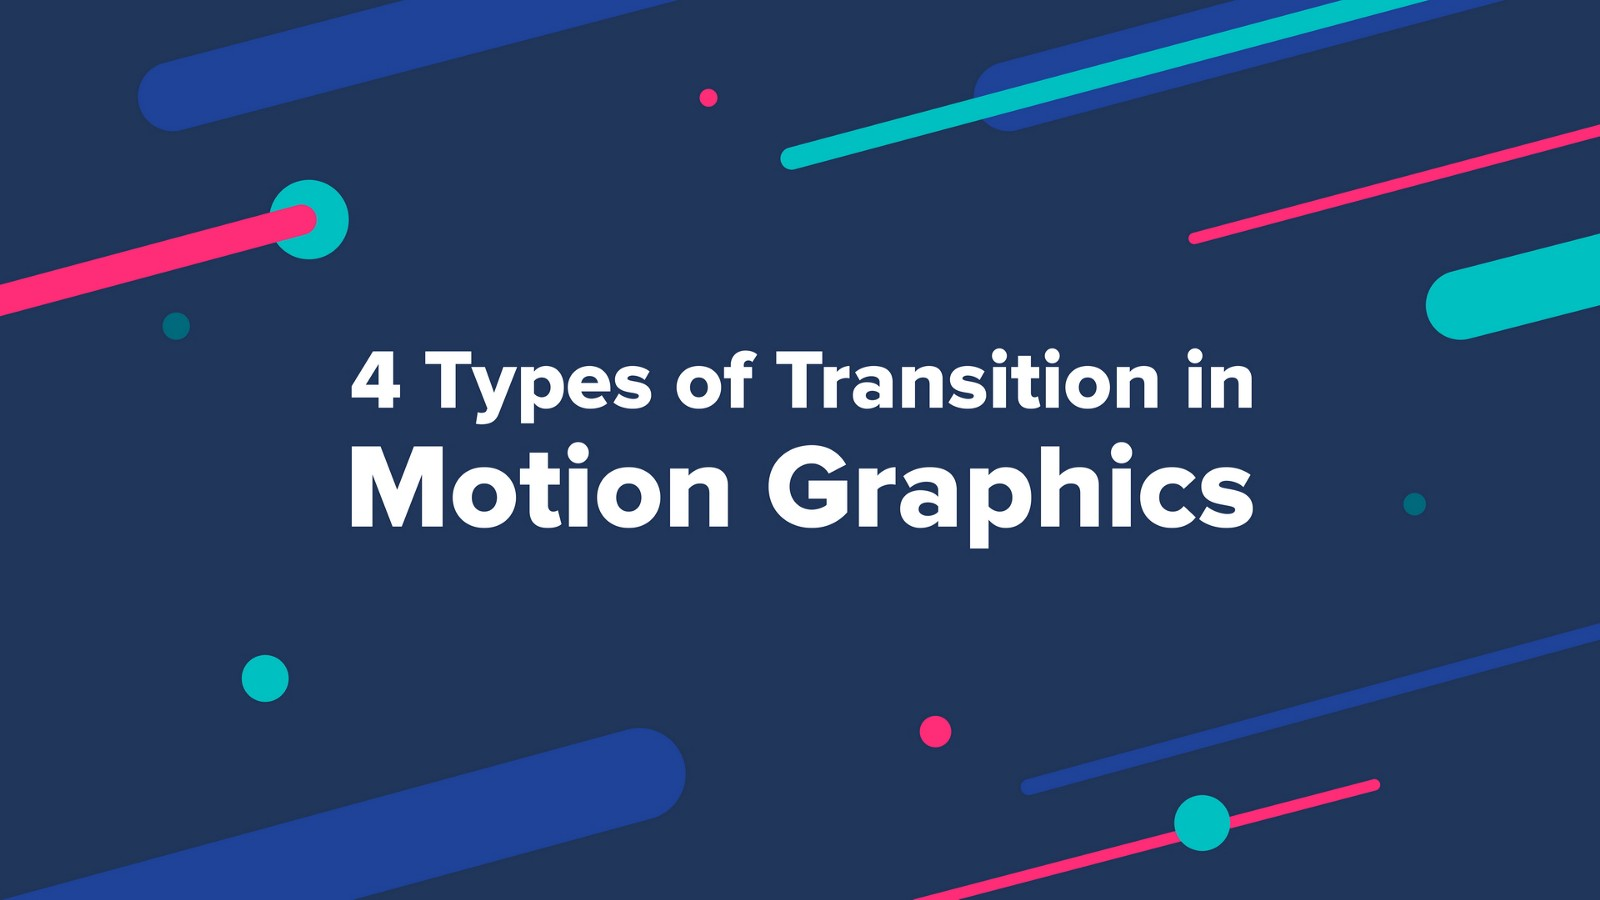 4 types of transition in motion graphics muzli design inspiration. Black Bedroom Furniture Sets. Home Design Ideas